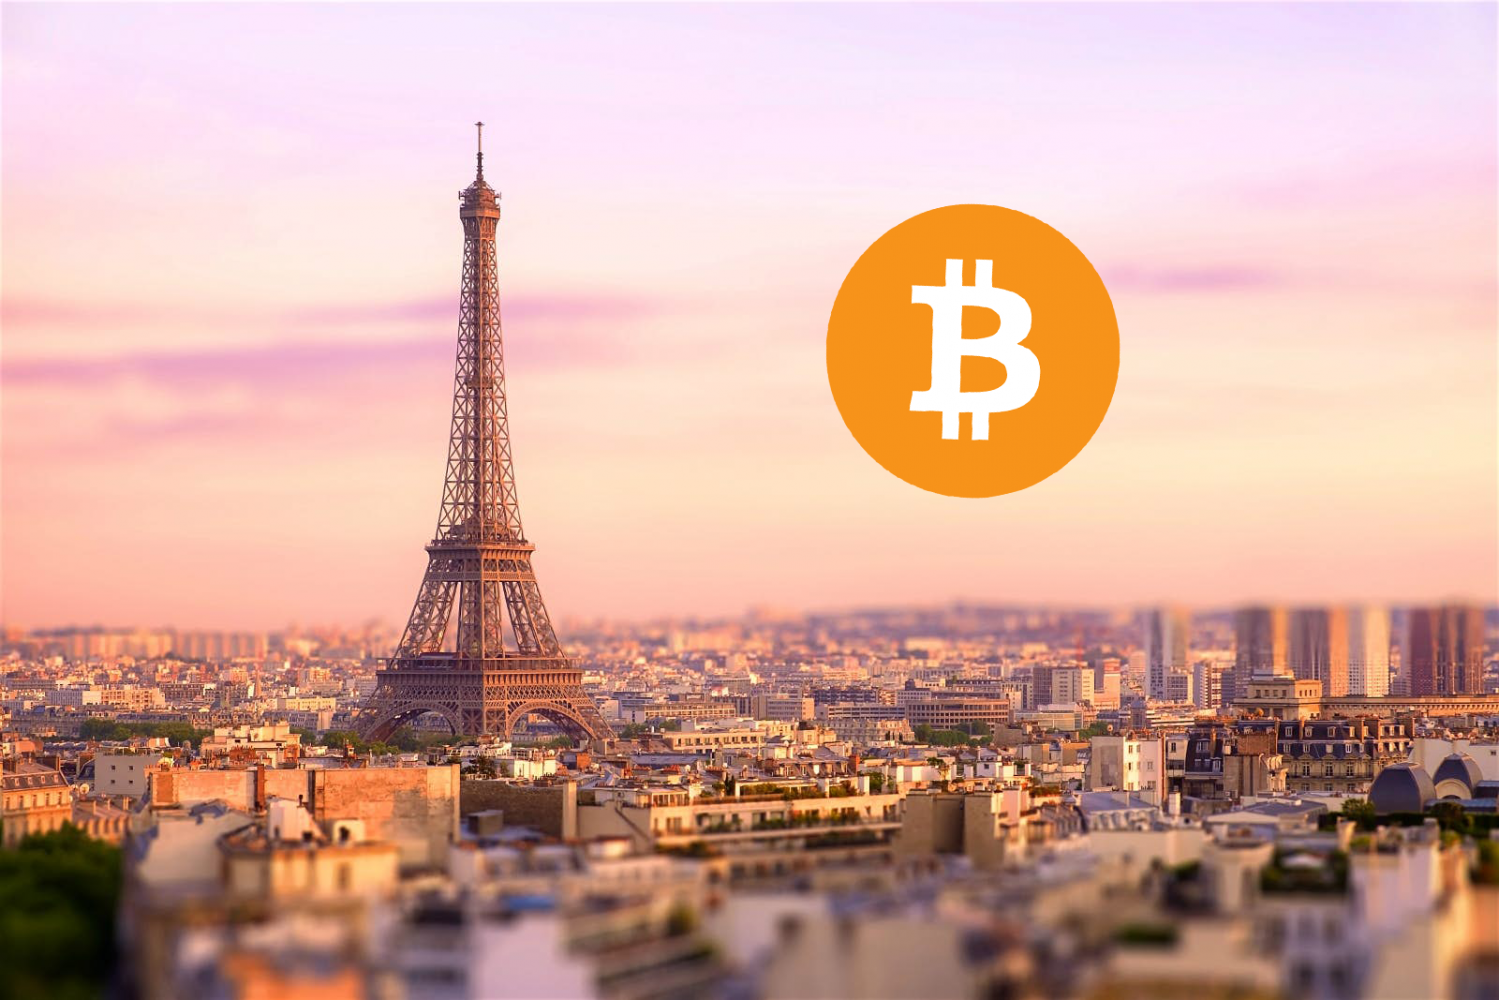 Bitcoin was considered money in France